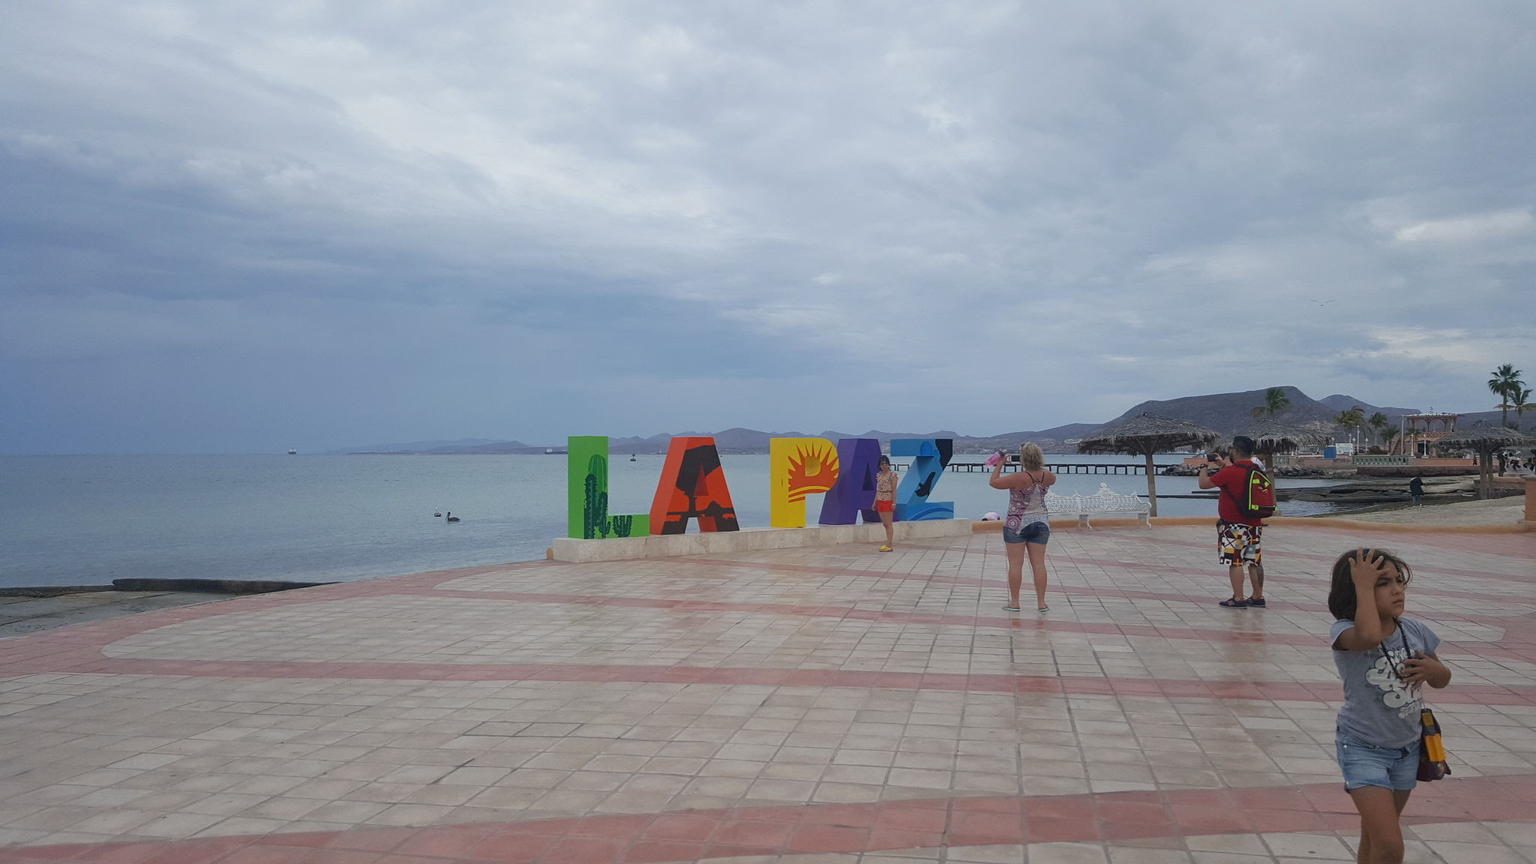 Day Trip to La Paz from Cabo San Lucas